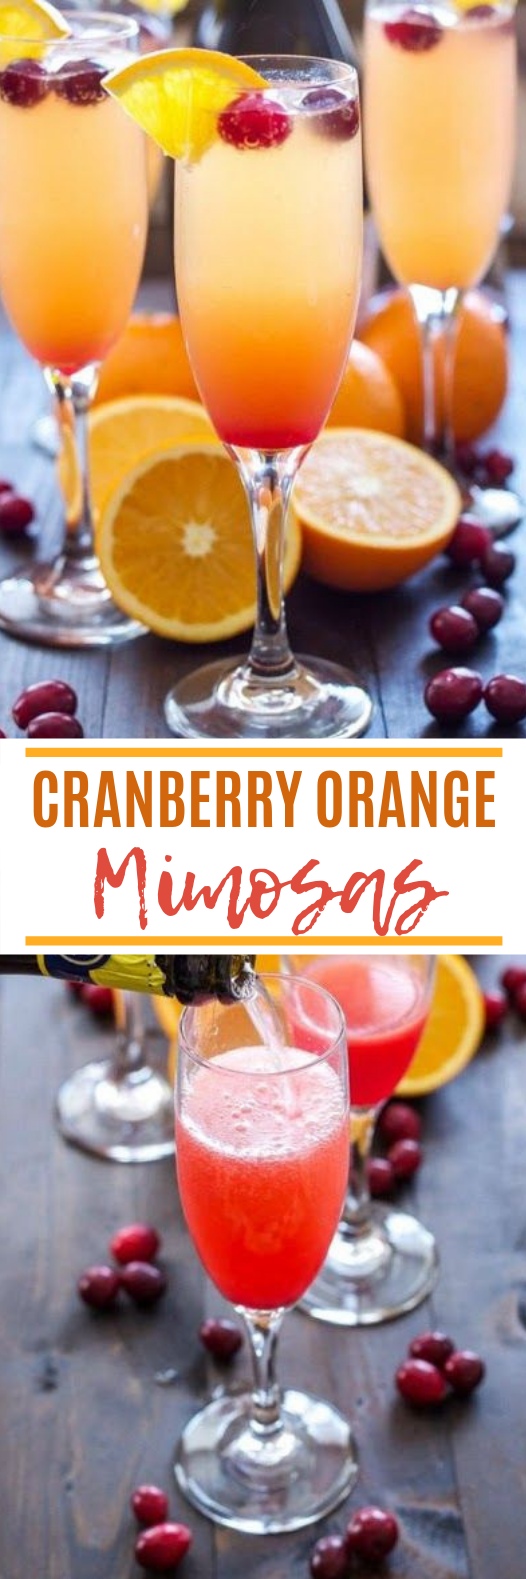 Cranberry Orange Mimosas #cocktail #drink